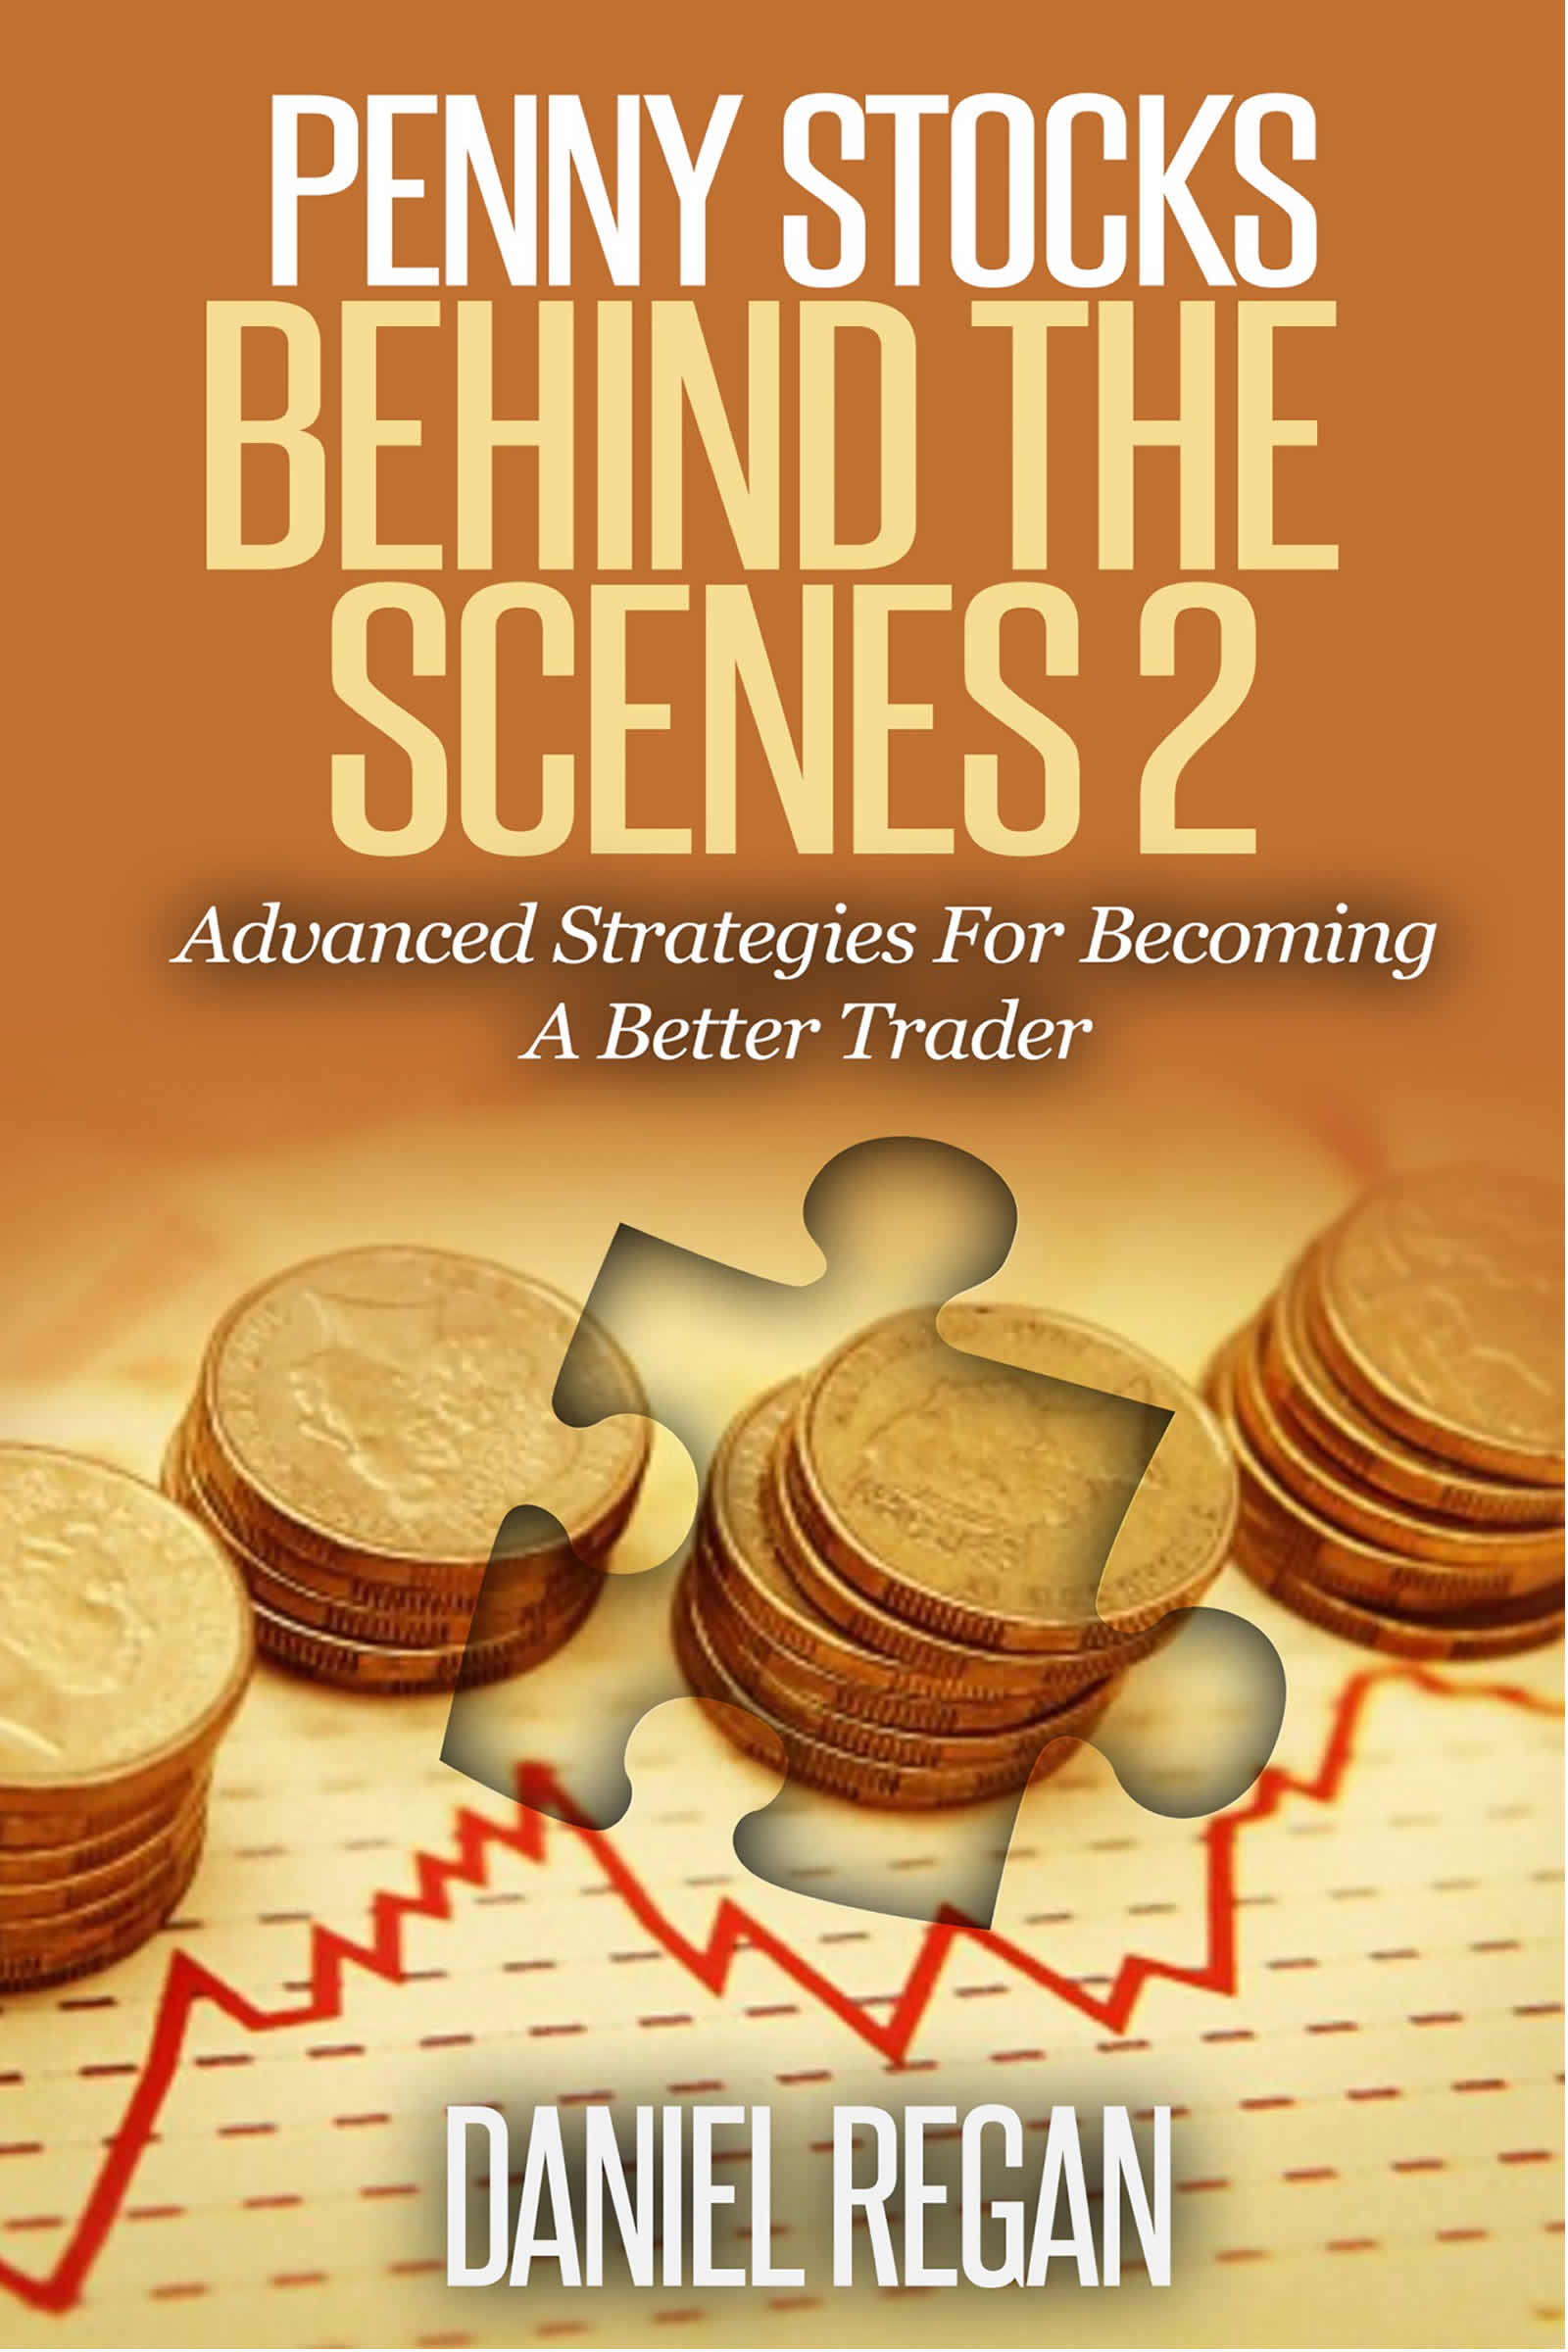 Penny Stocks Behind the Scenes 2: Advanced Strategies for Becoming a Better  Trader, an Ebook by Daniel Regan